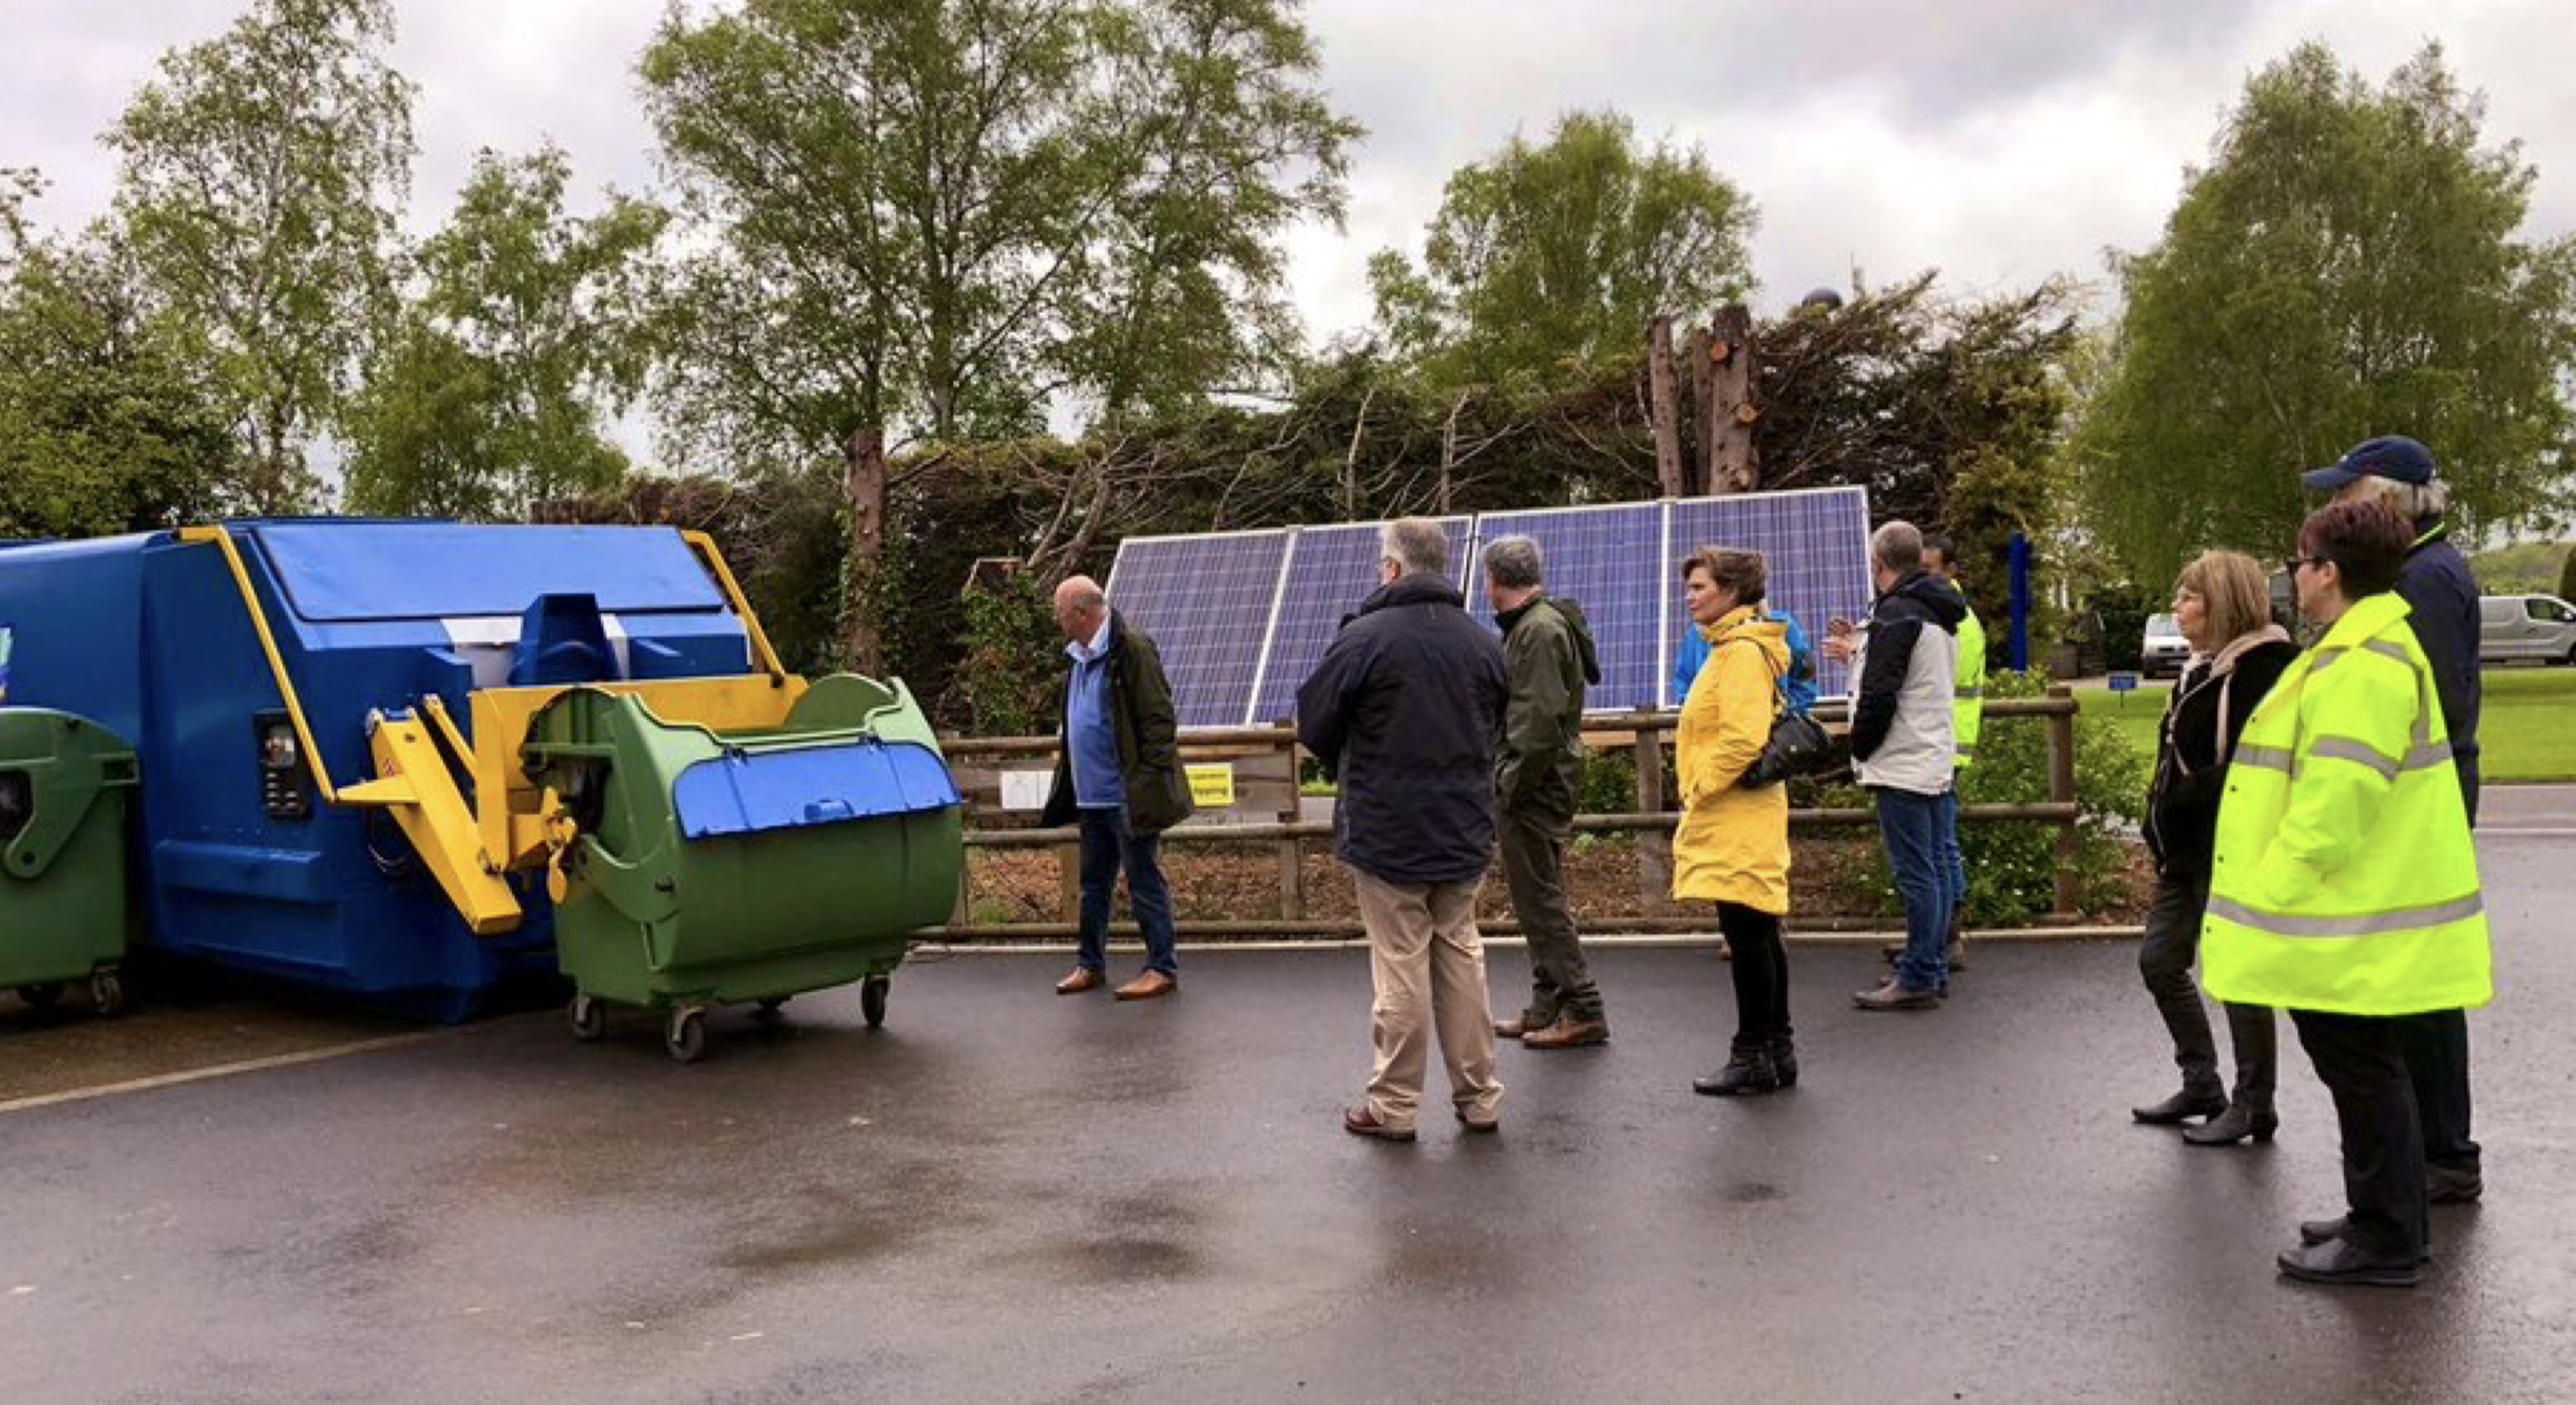 solar powered waste compactor